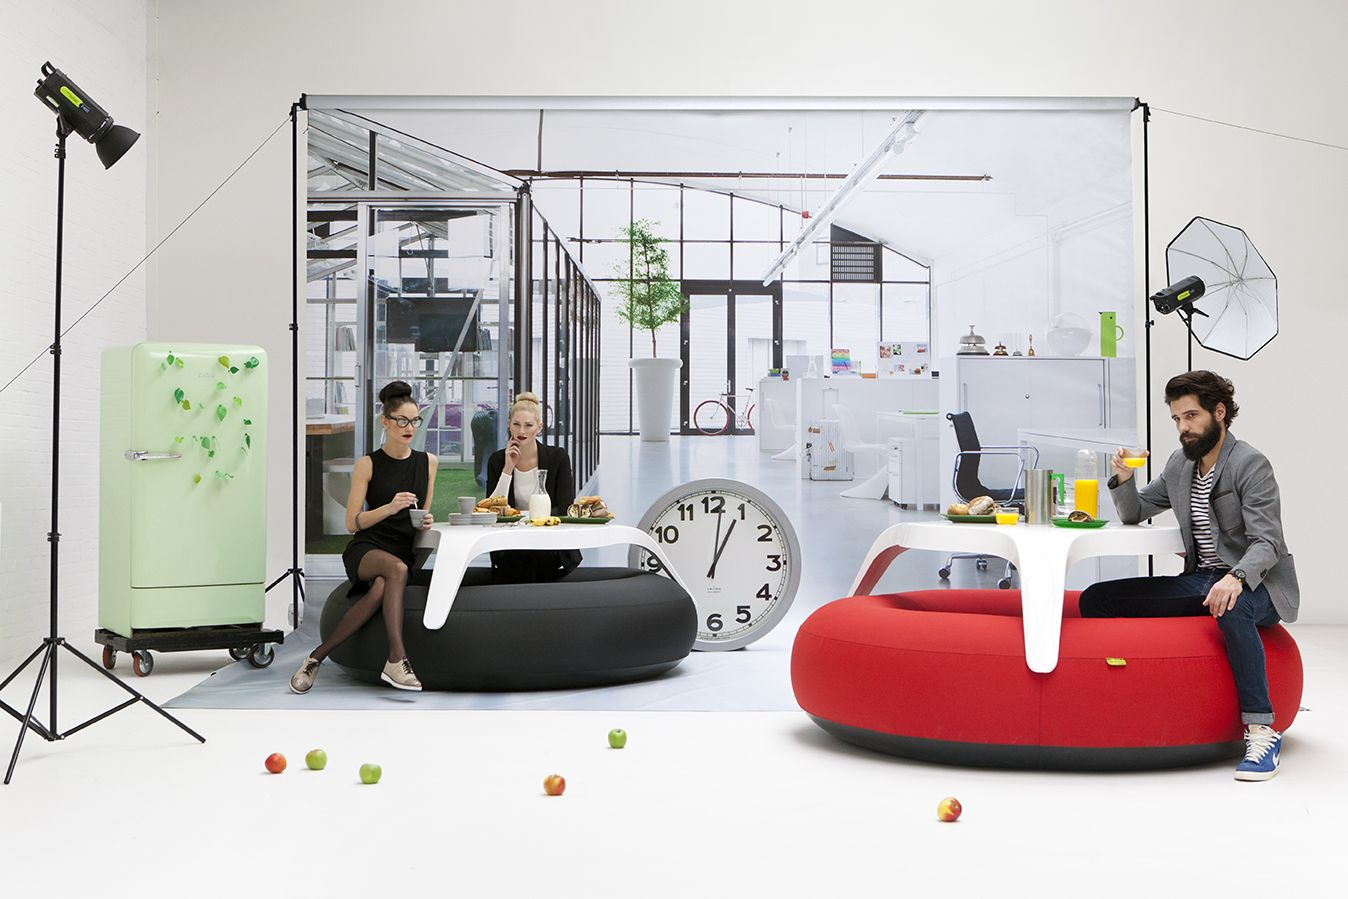 Inflatable furniture  Blofield Donuts and Big Blos  Want  Pinterest